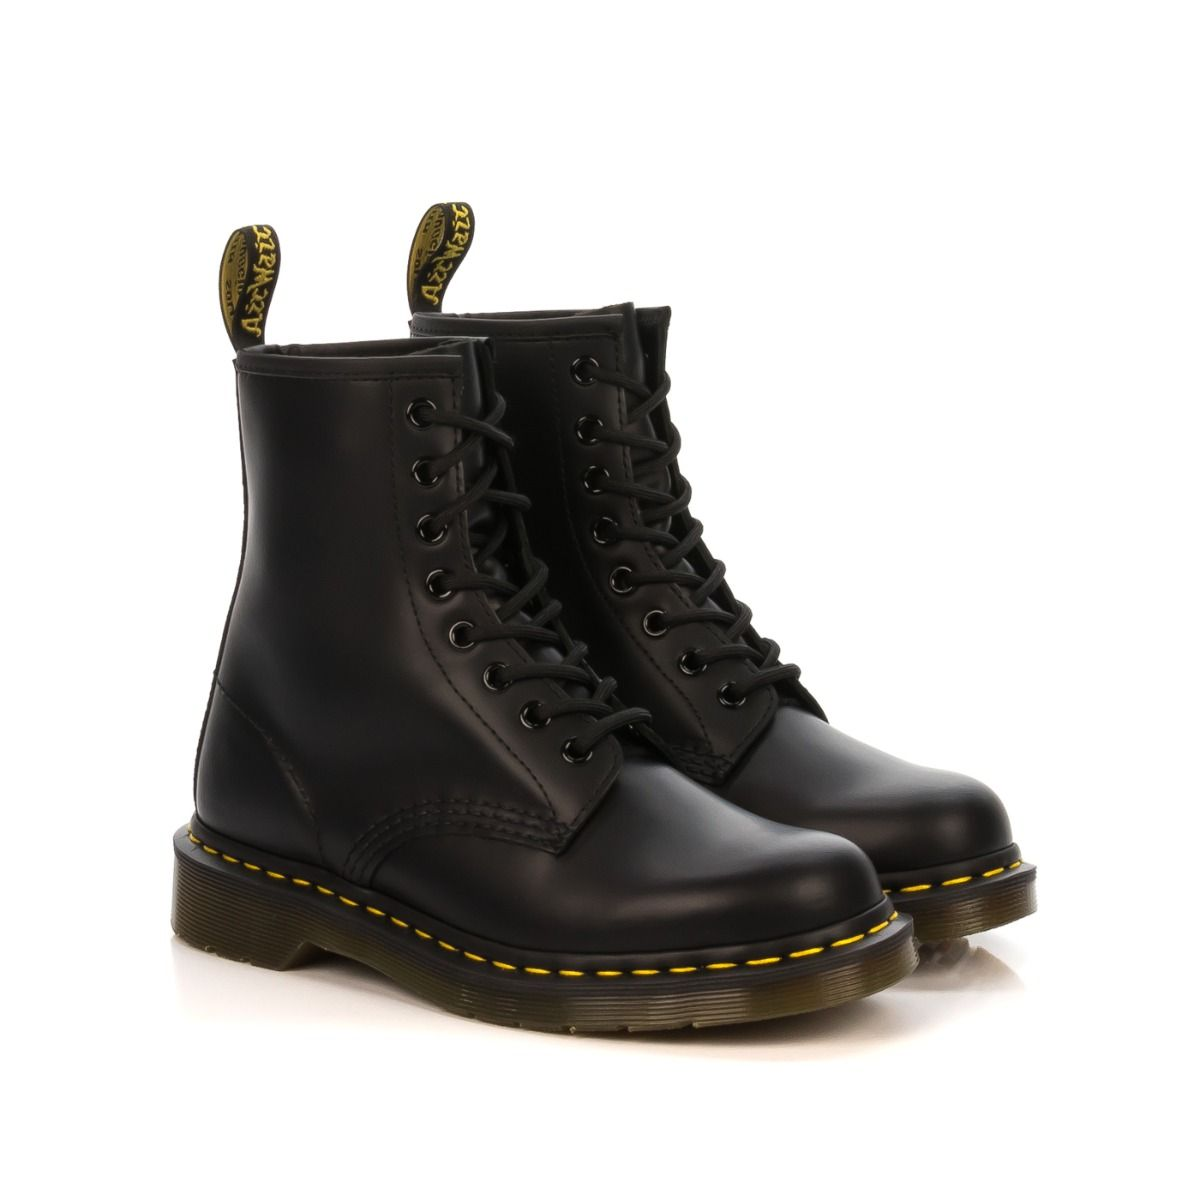 sports shoes a64a3 81ad7 dr martens 1460 nero donna